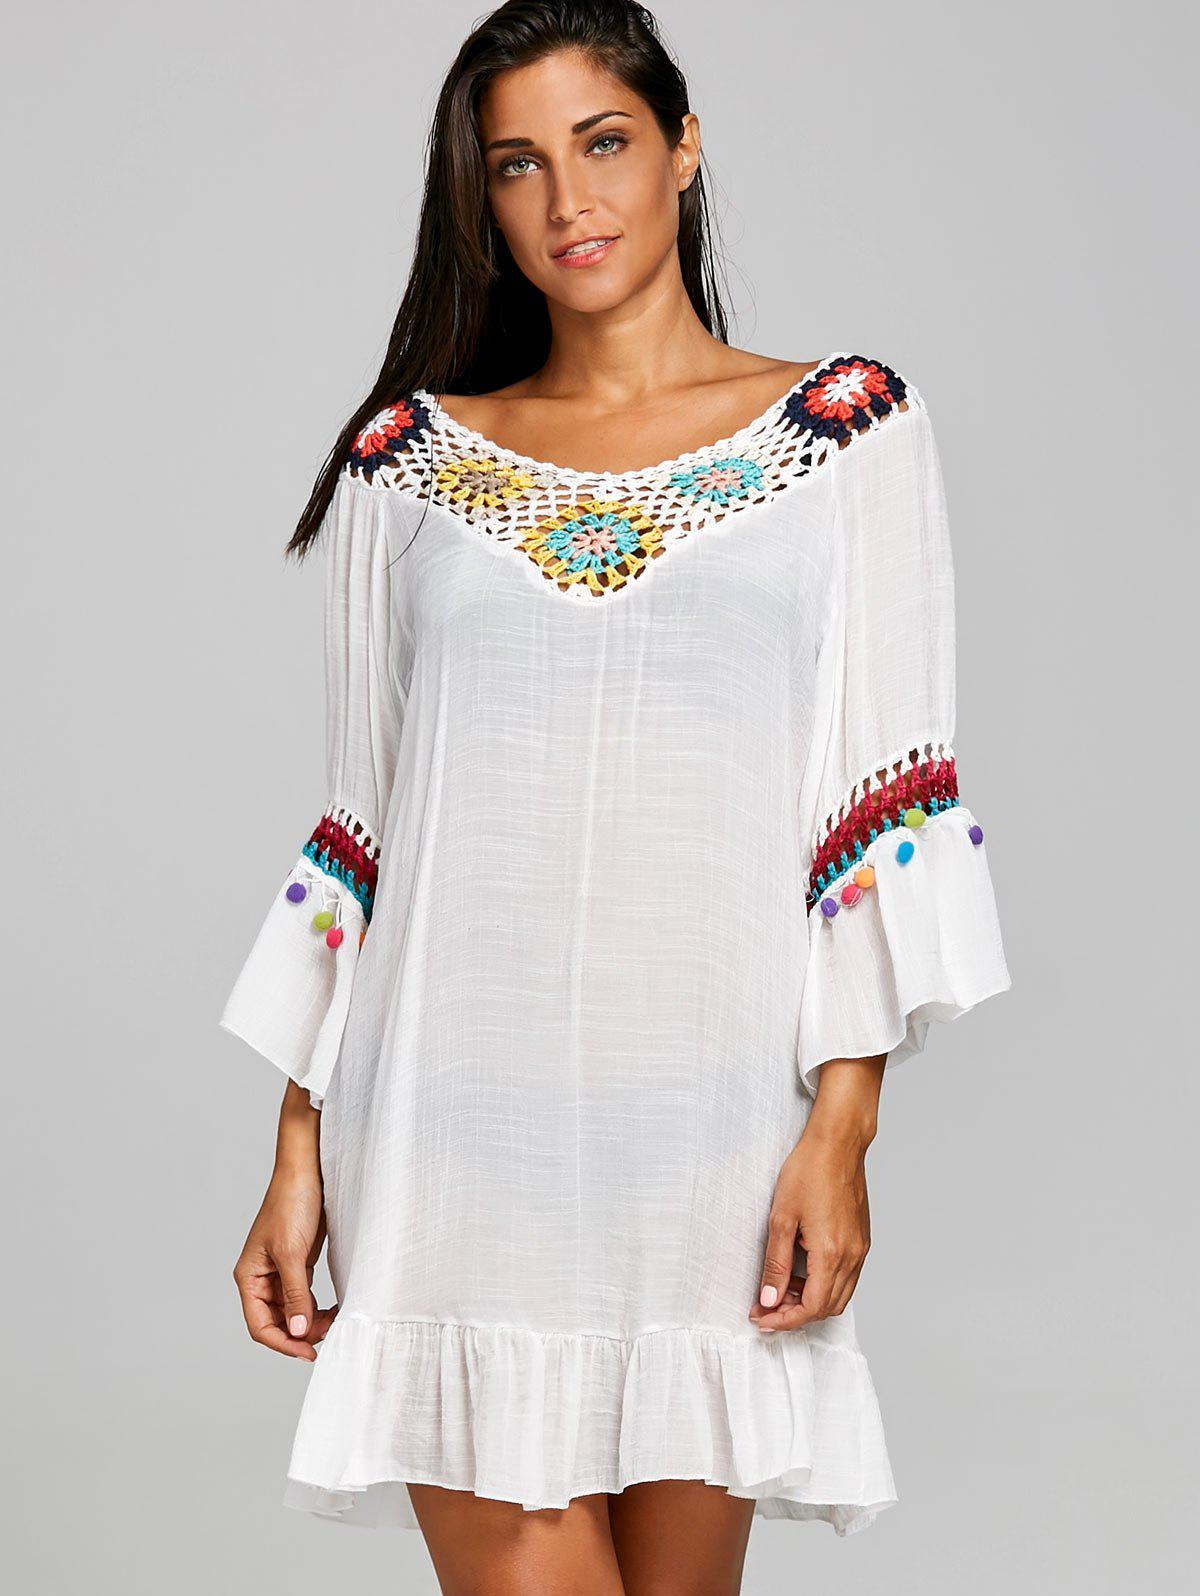 Crochet Panel Cover Up Flounce Dress - WHITE ONE SIZE